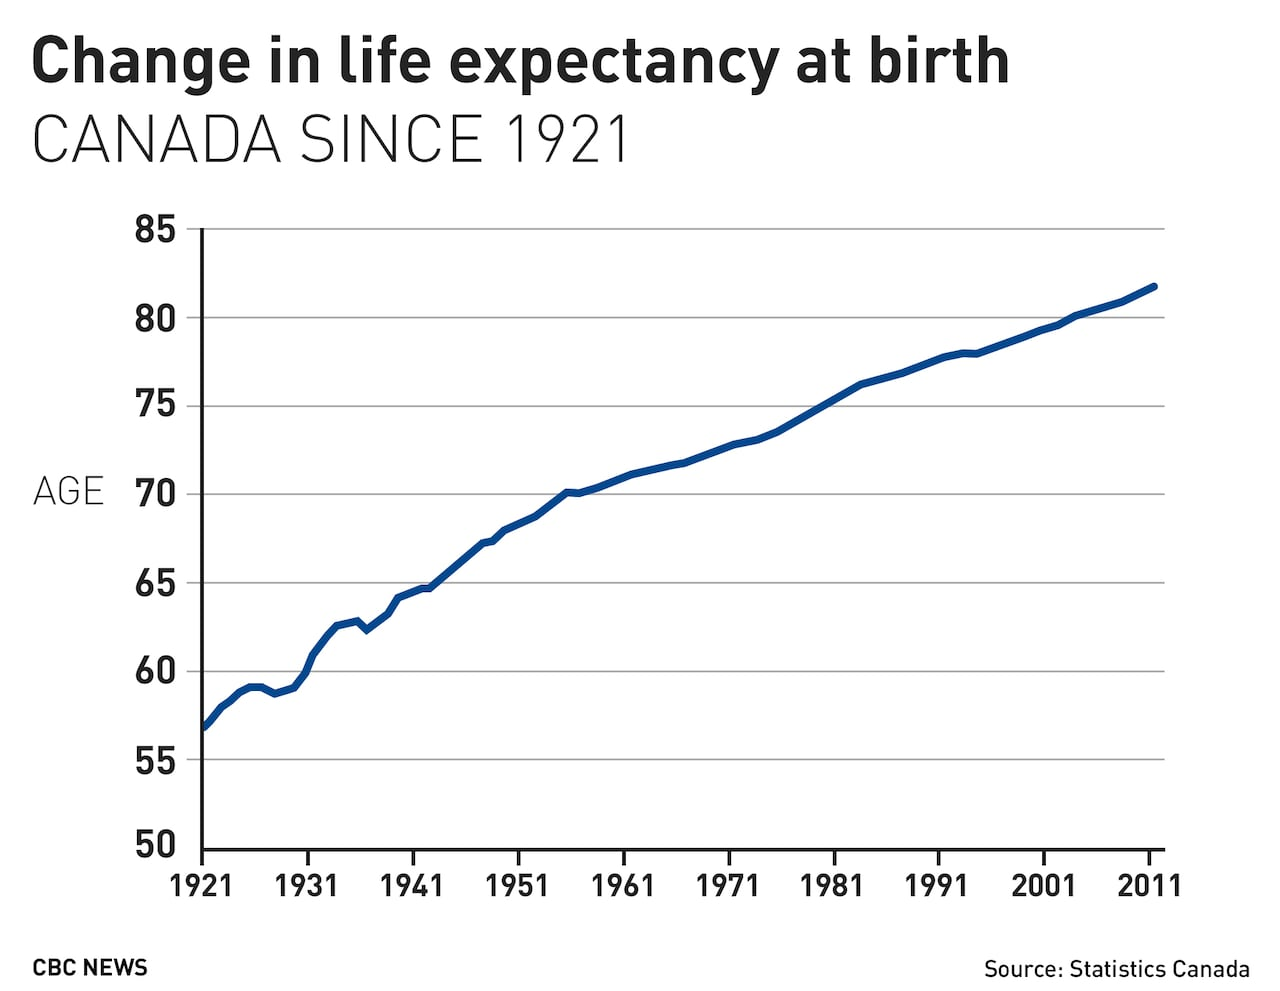 Canadians born in 2030 forecast to live 4 years longer than